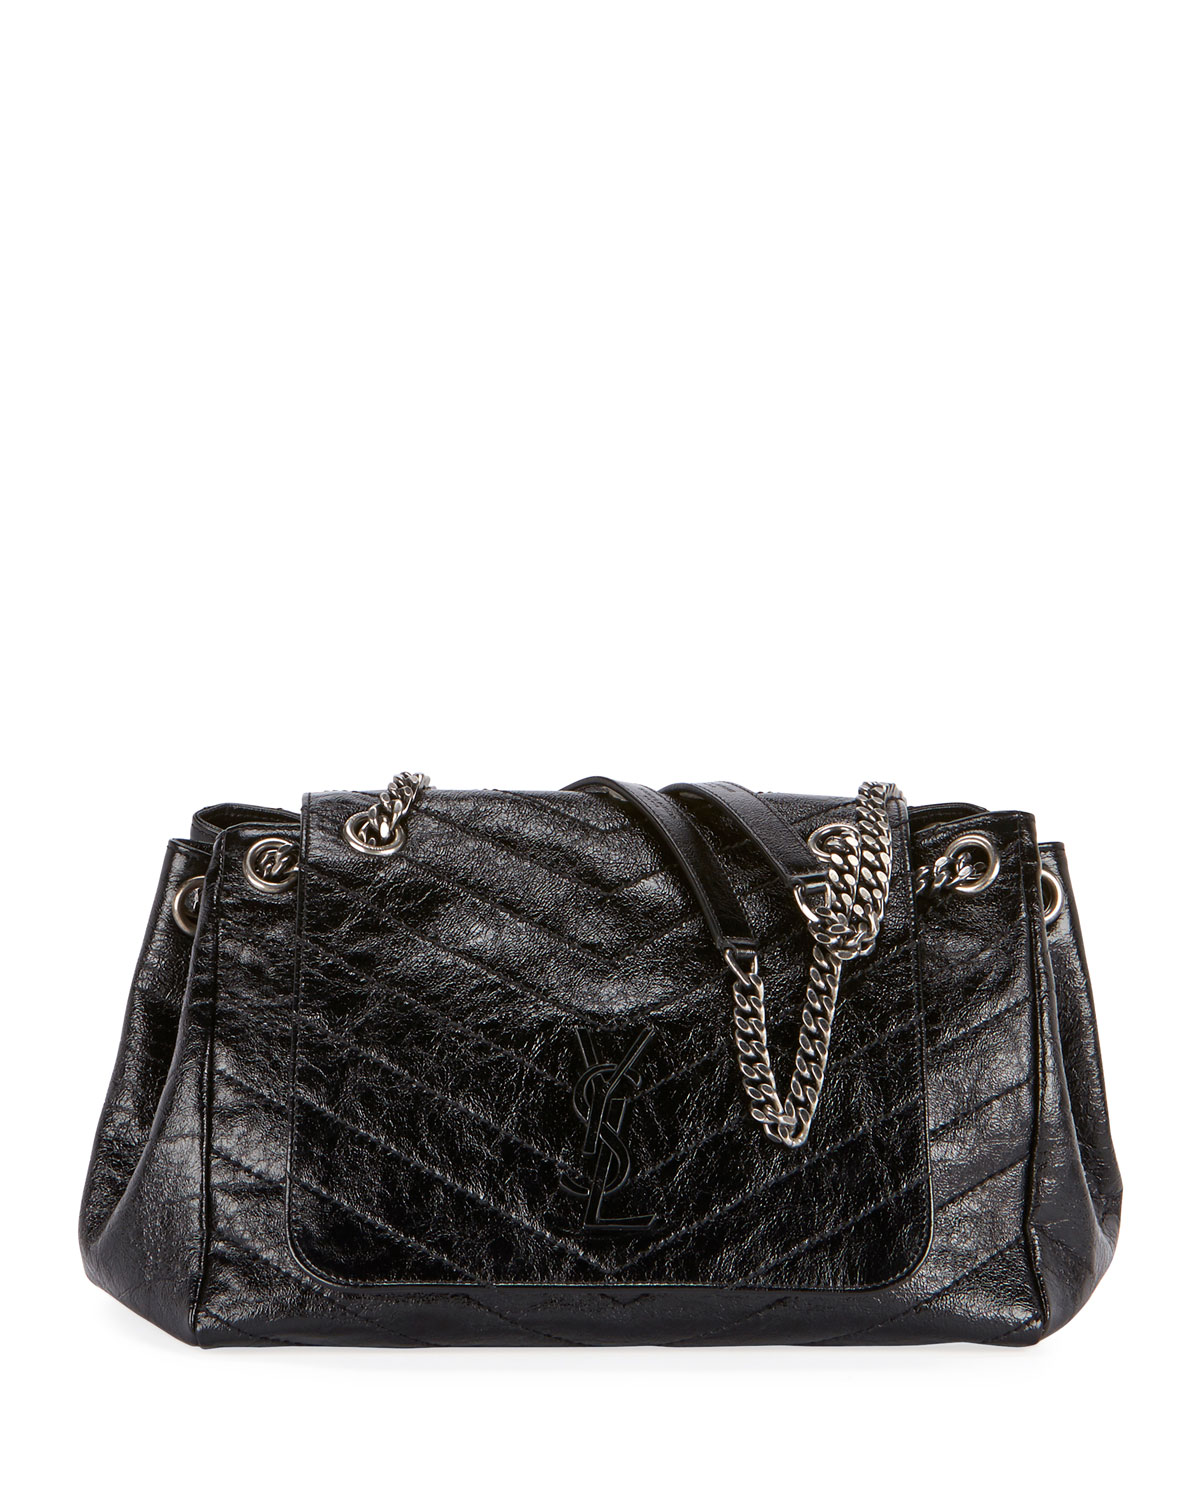 d62384cb049987 Saint Laurent Nolita Medium Monogram YSL Double Chain Shoulder Bag ...